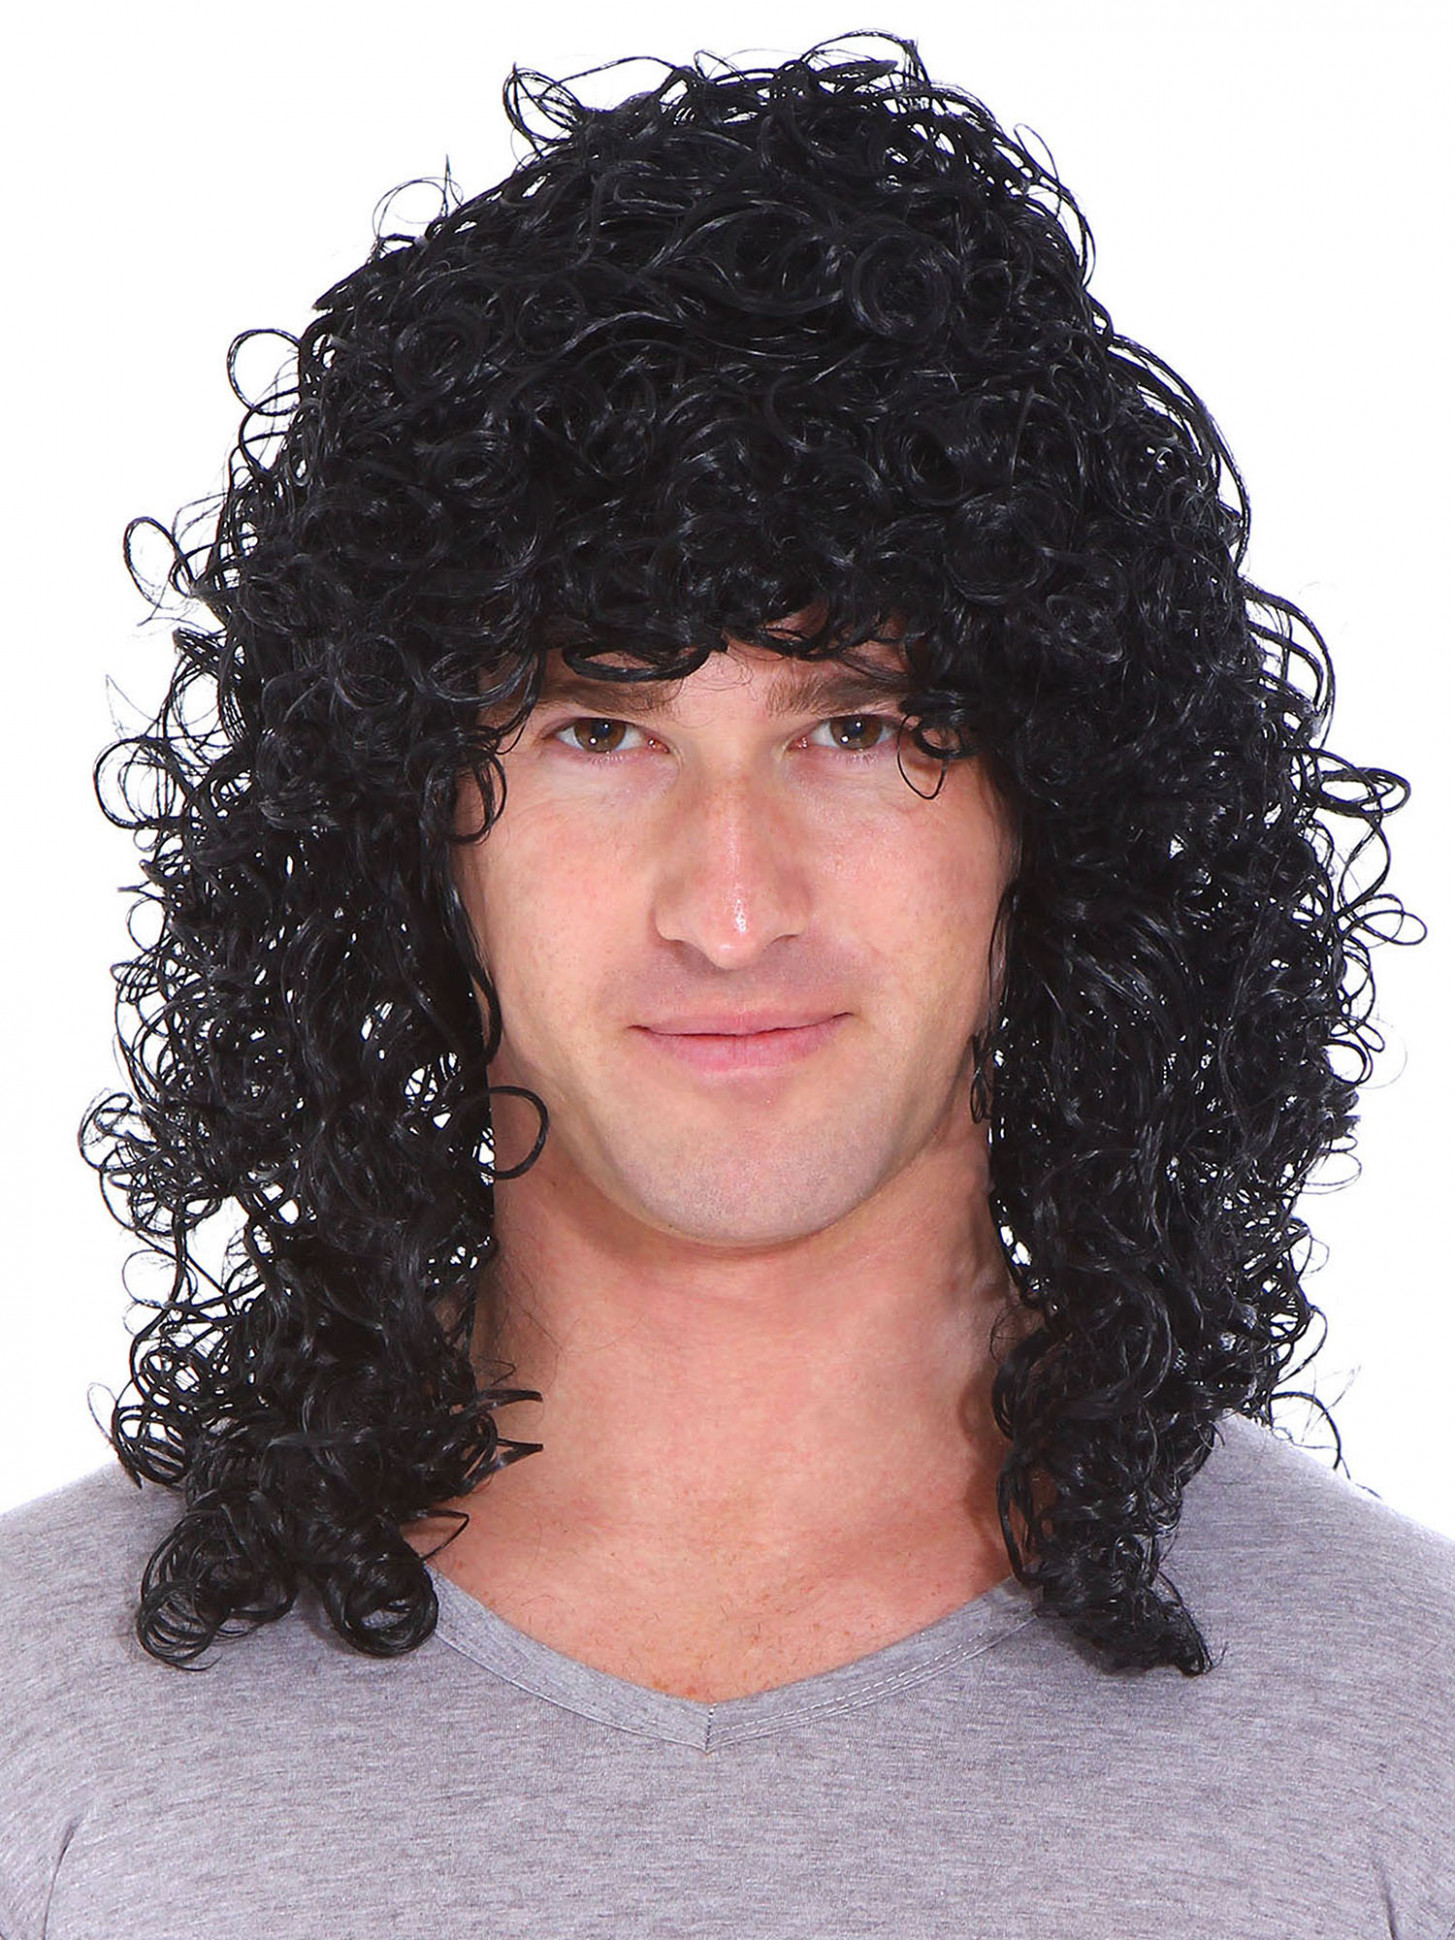 Mens 12s Rocker Long Curly Wig Full Hair Black Wigs - Walmart.com